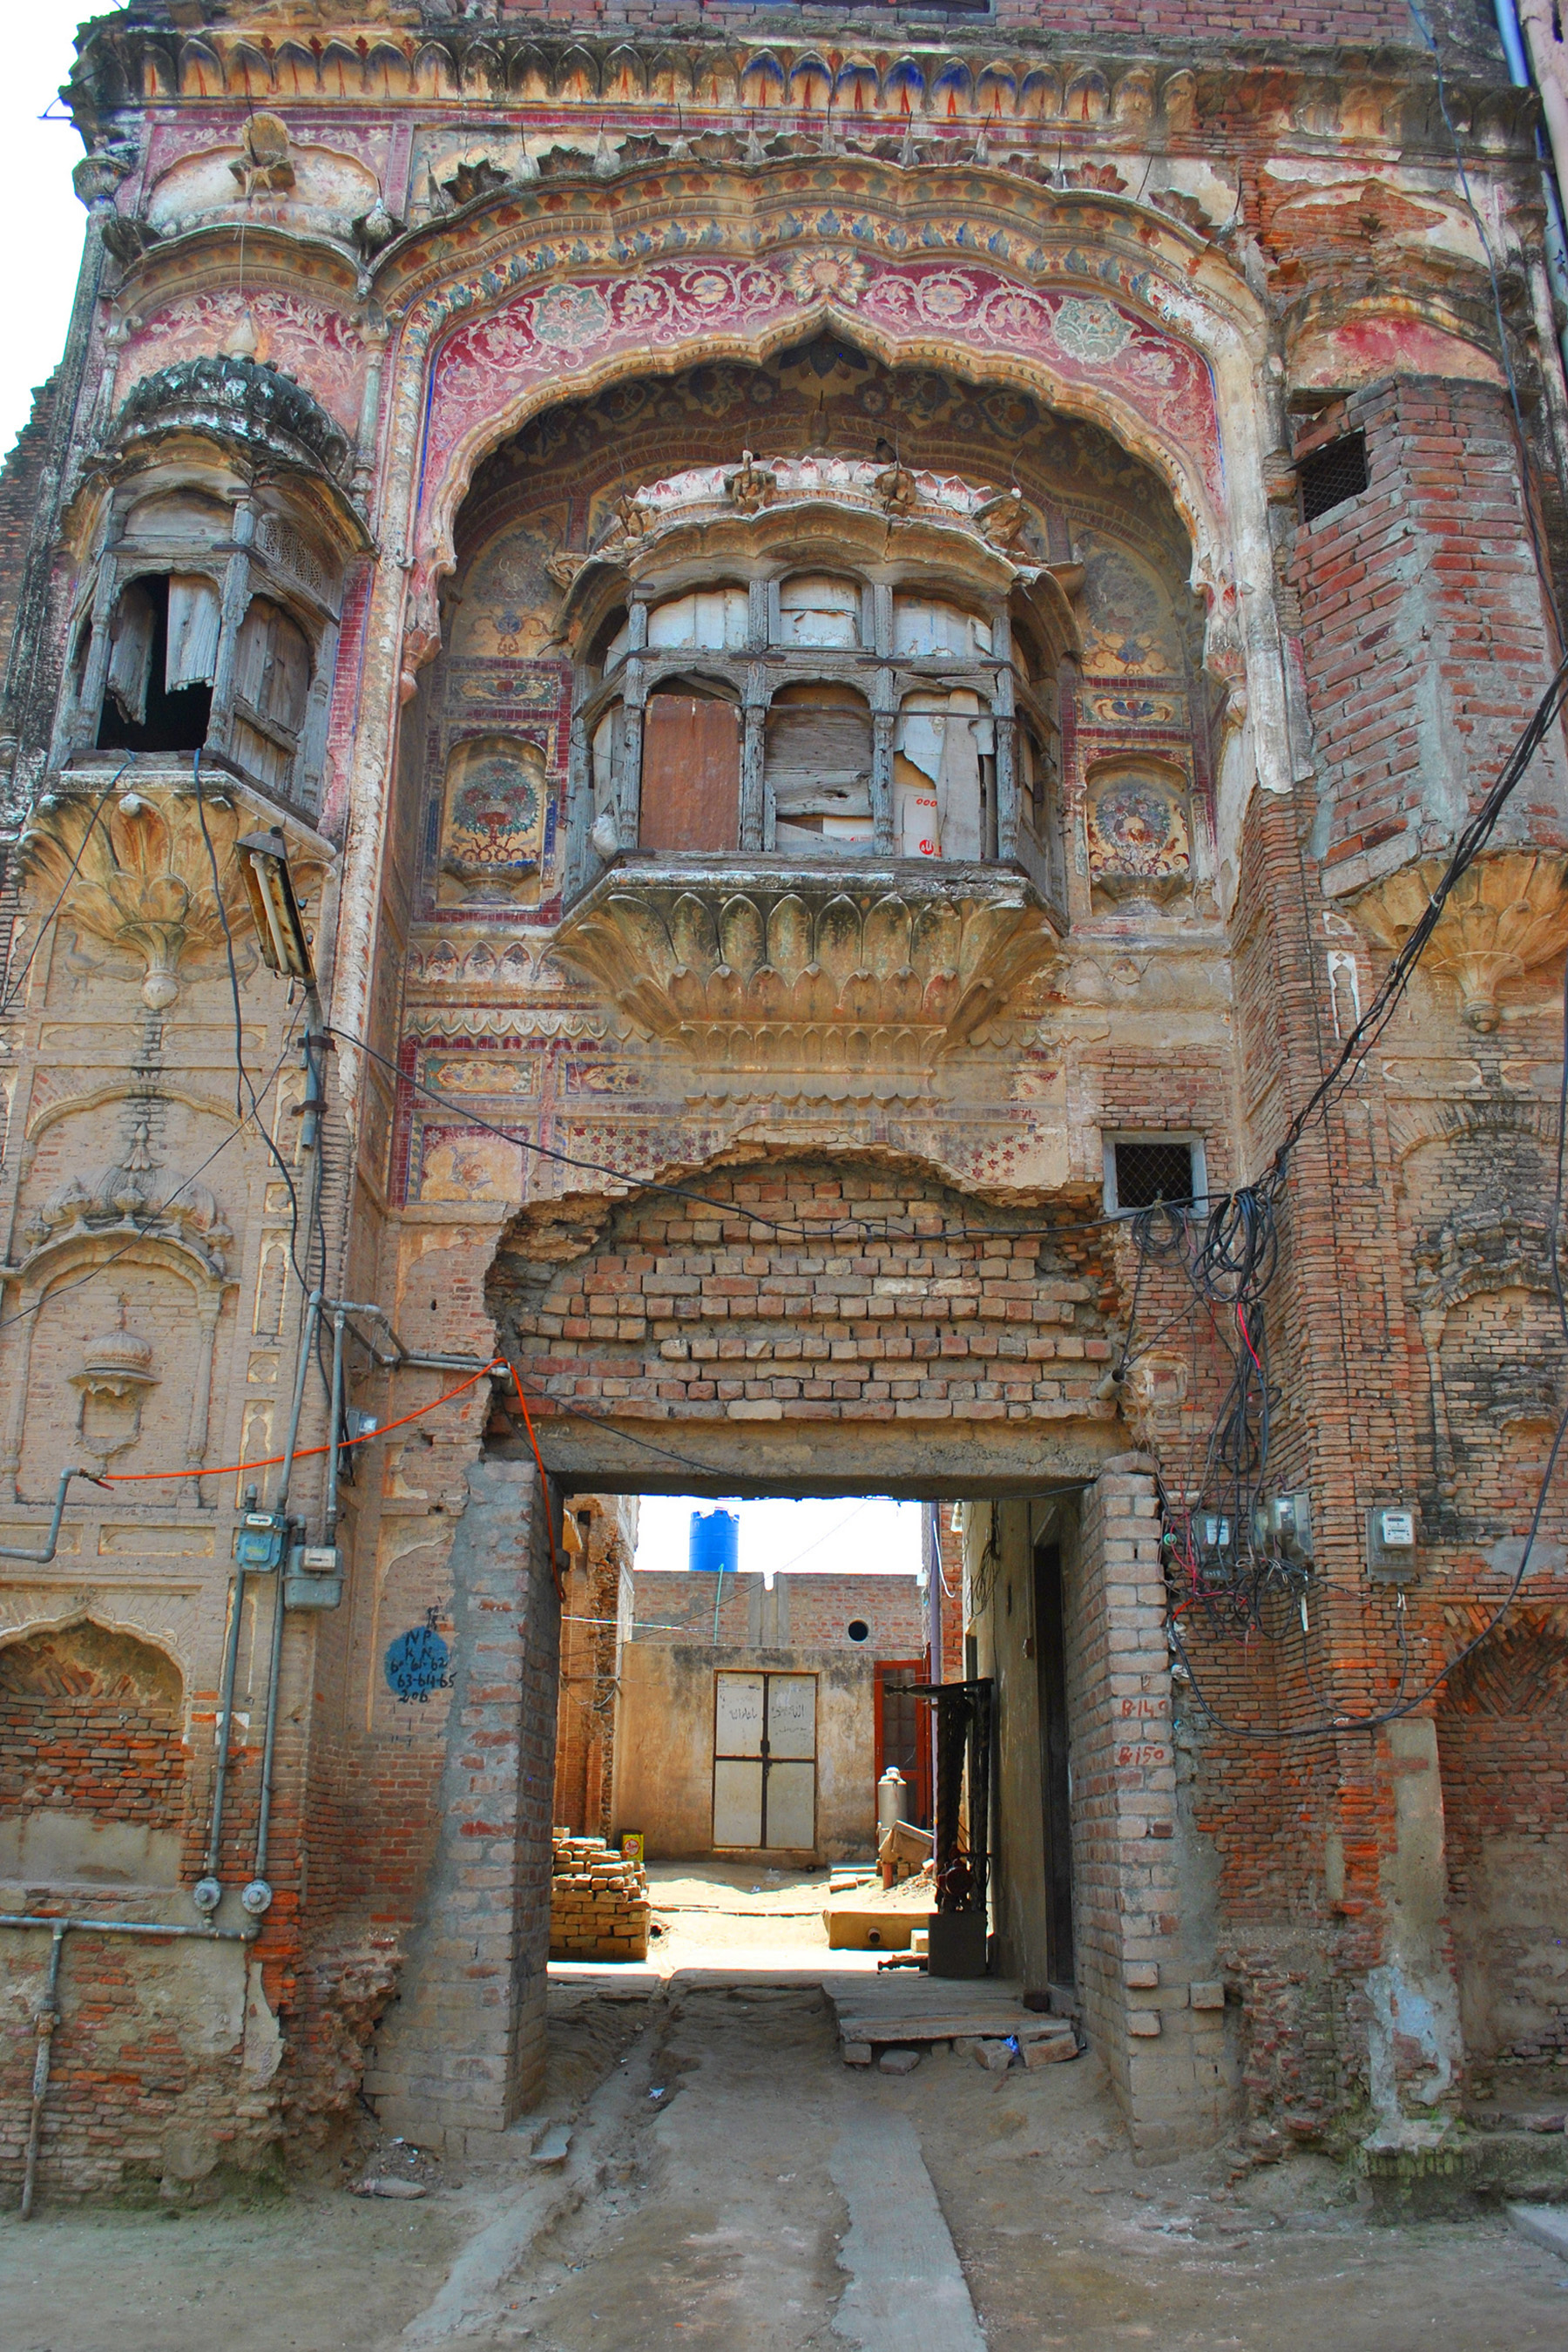 Facade of Diwan haveli, the magnificent structure is symbolises aesthetic taste of the Diwan family.